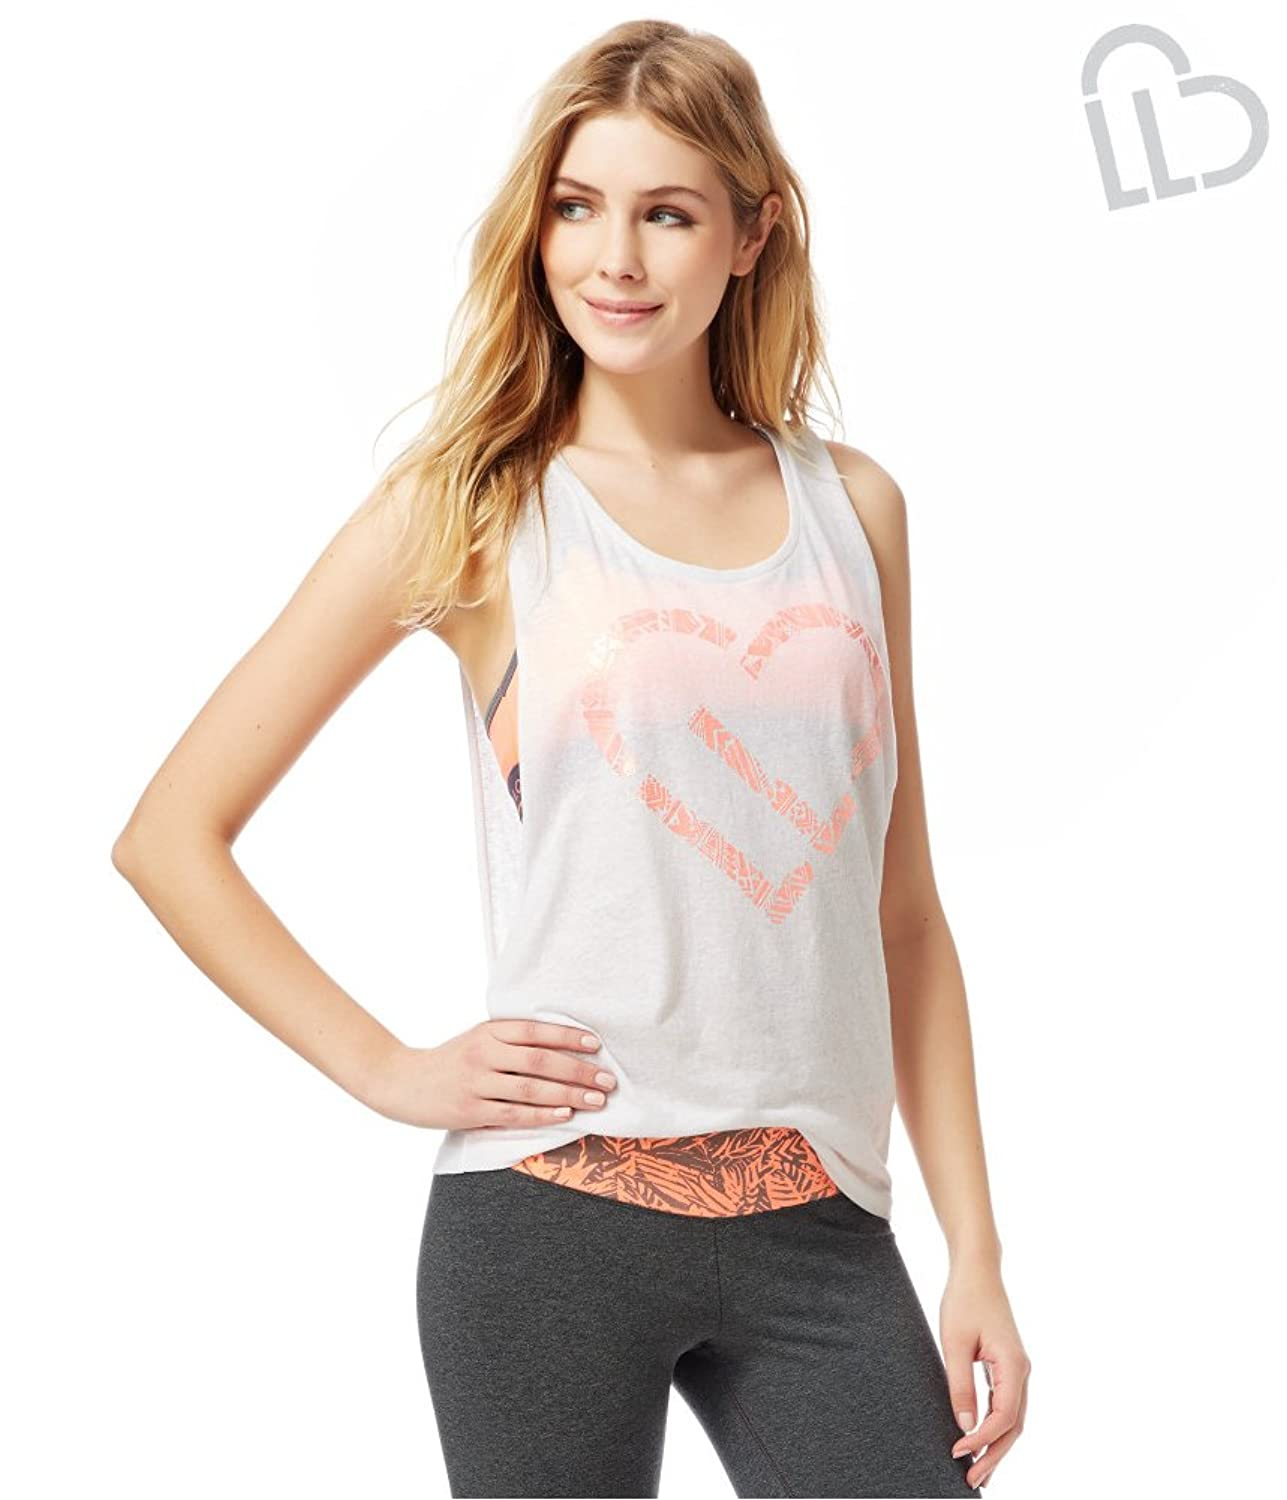 Aeropostale Womens Southwest Heart Muscle Graphic T-Shirt